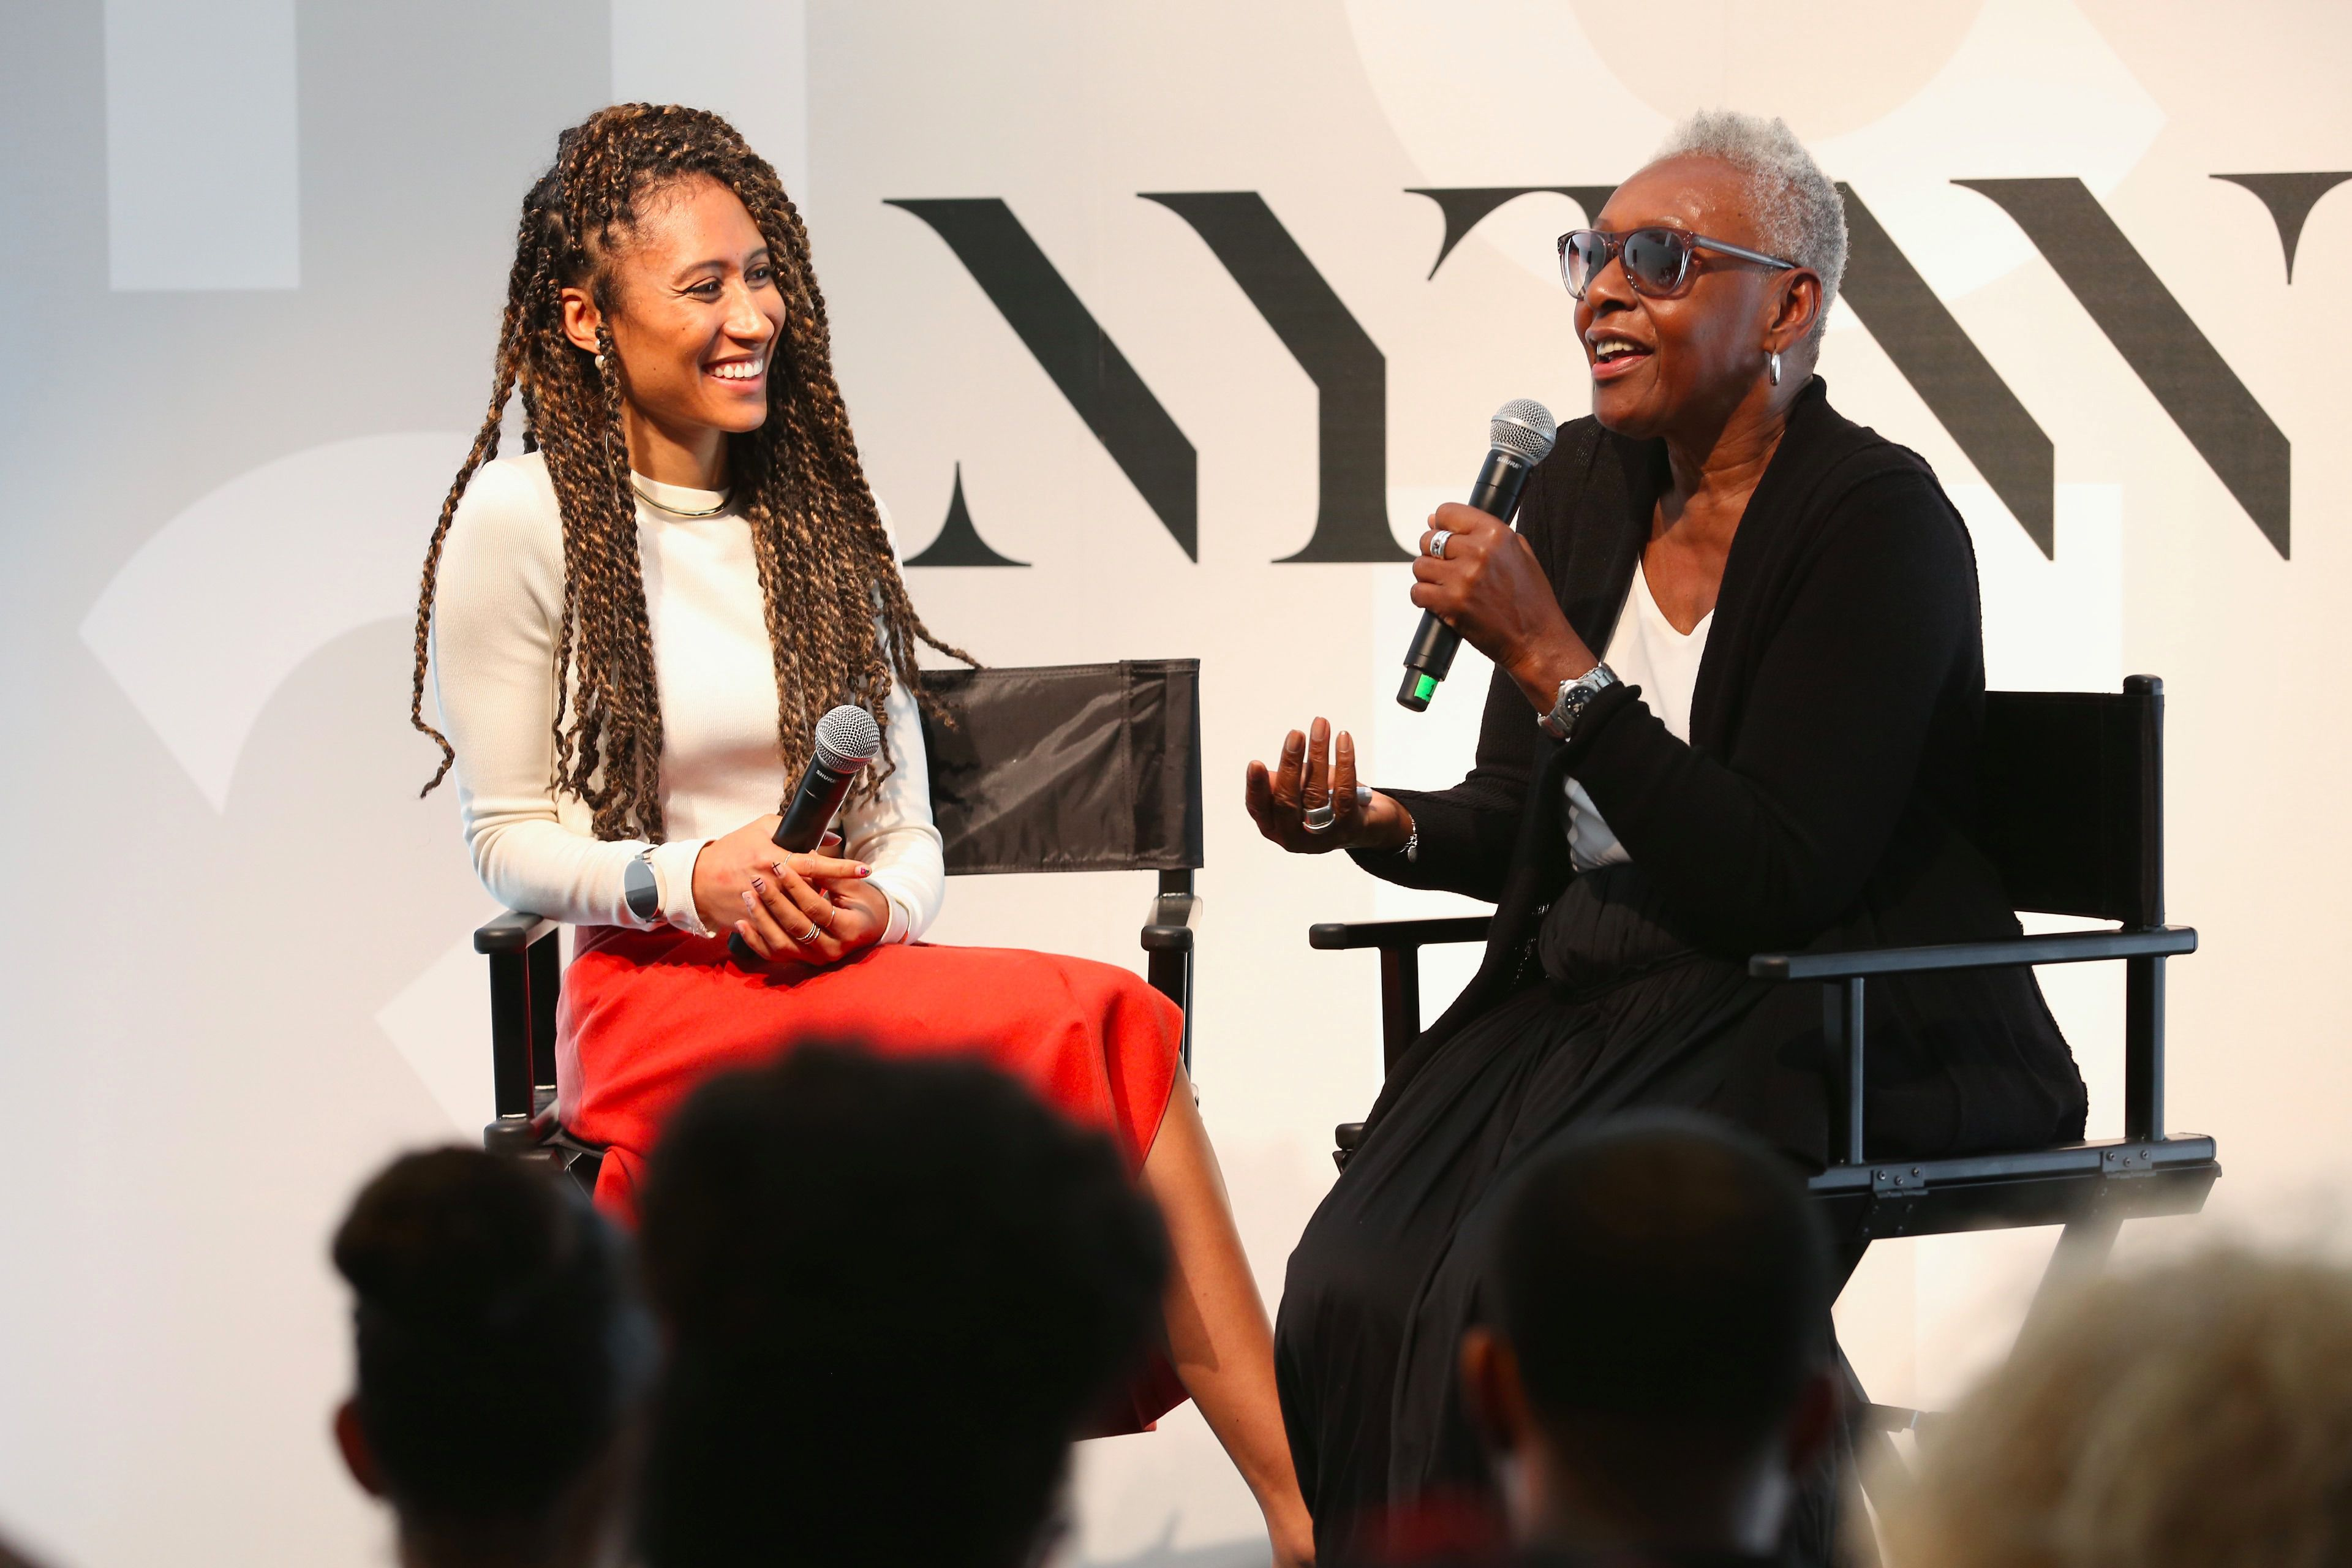 Teen Vogue Editor-in-Chief Elaine Welteroth, left, speaking with Bethann Hardison.